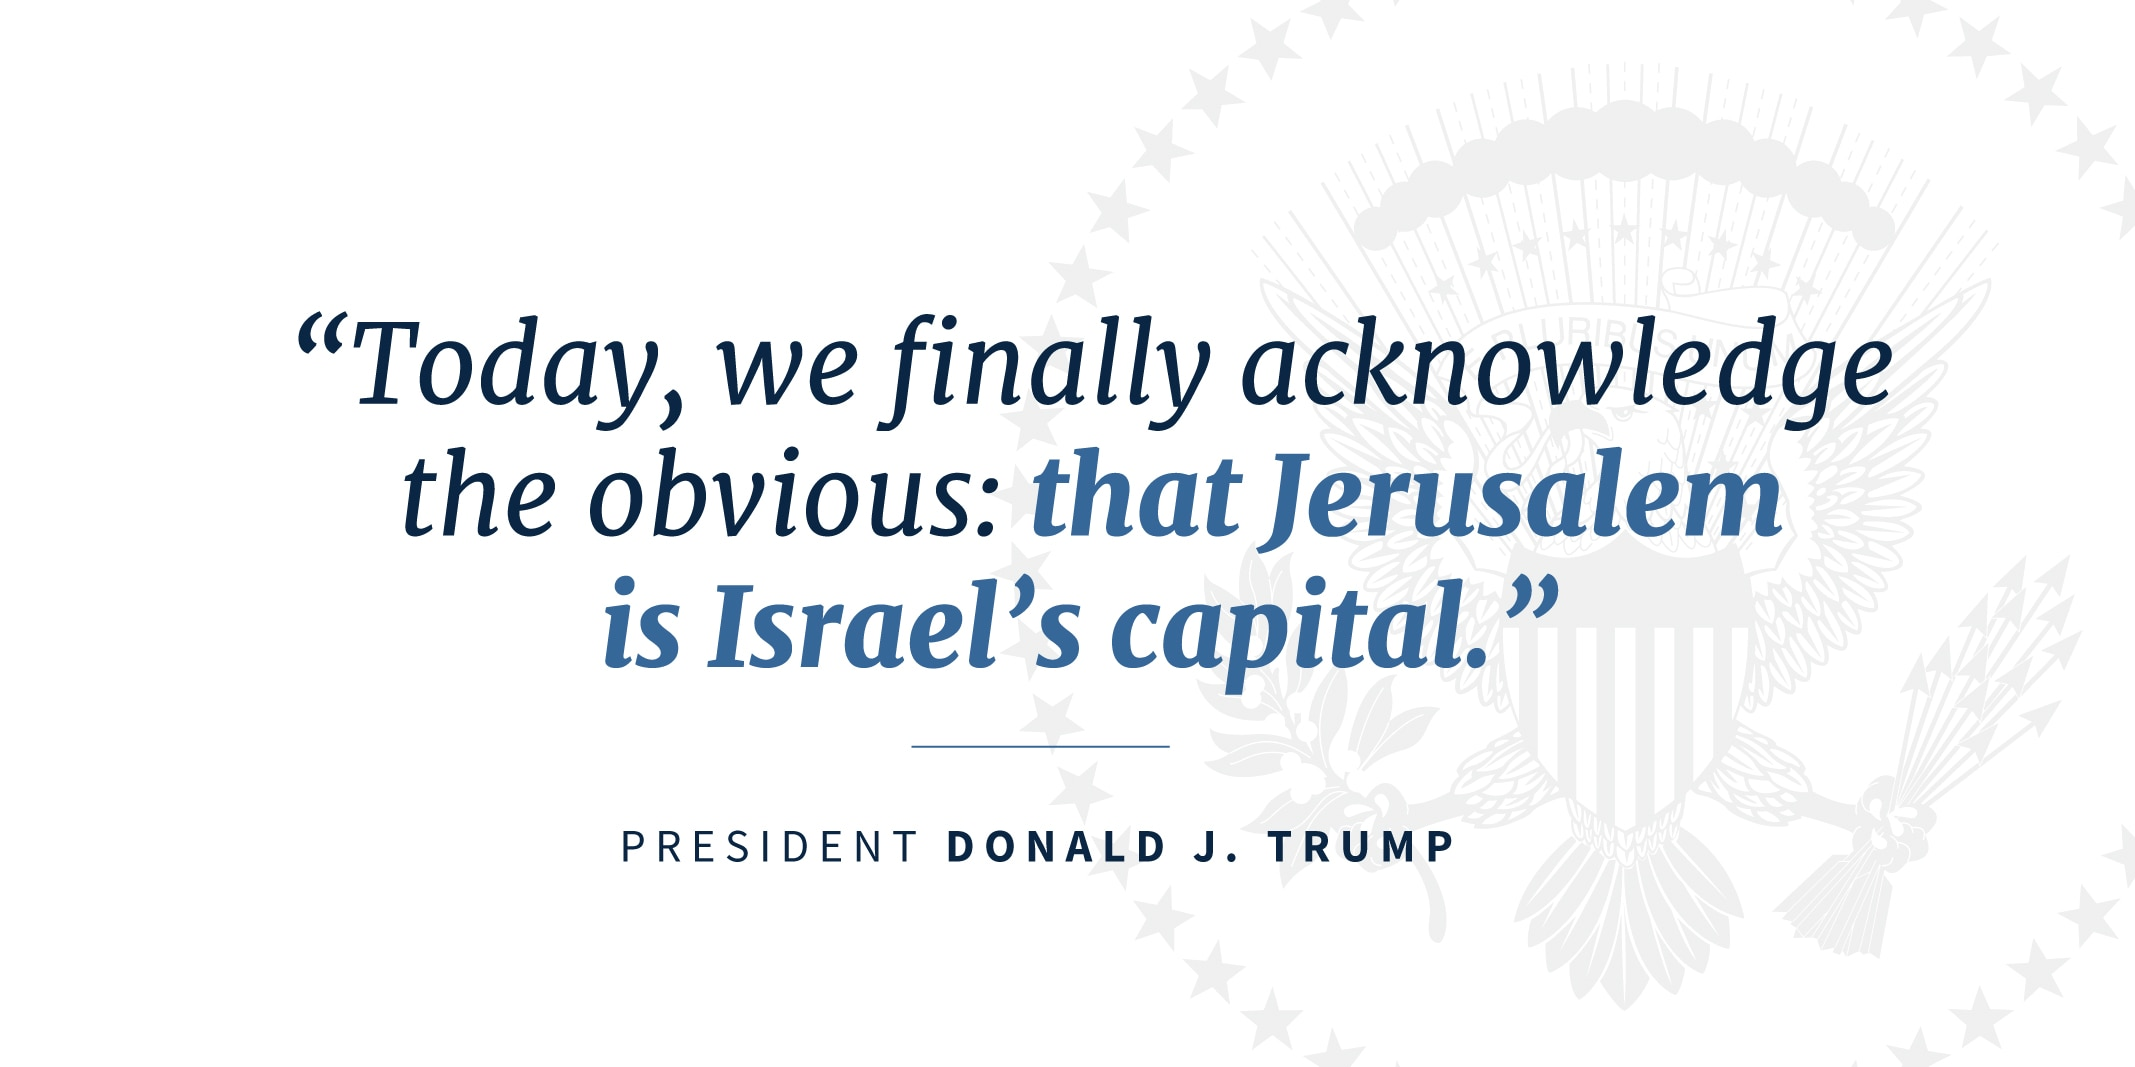 Quote from President Trump on Jerusalem as Israel's capital (State Dept.)